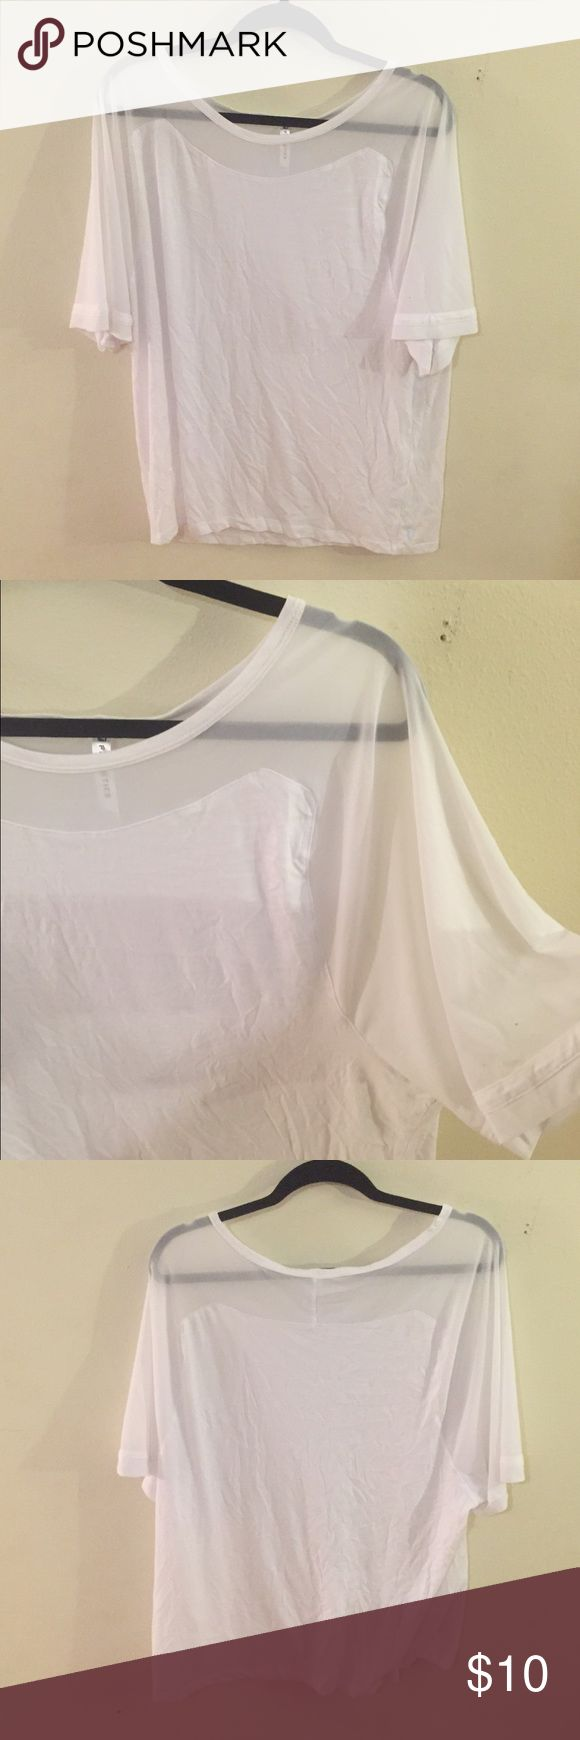 Fabletics White Workout Shirt White workout shirt with see through cut outs Fabletics Tops Tees - Short Sleeve